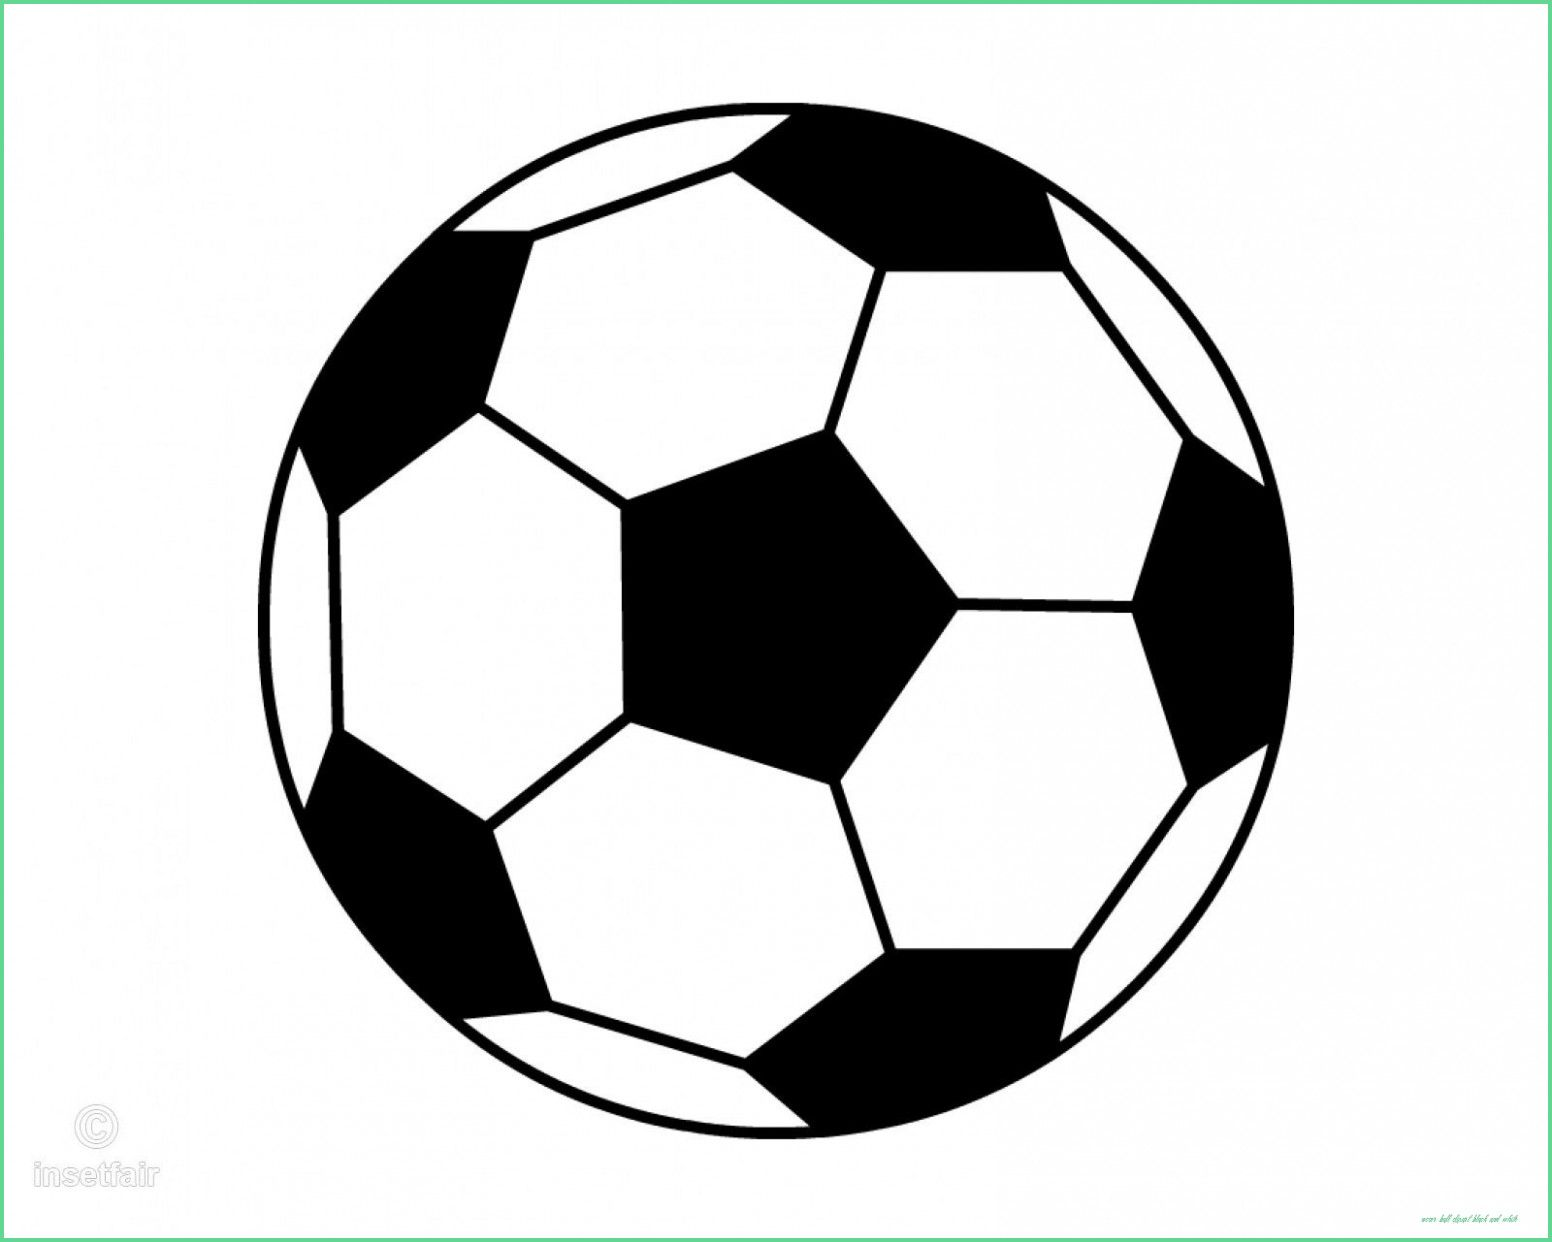 Pin By Ahmed Abimbola On Floral Watercolor Soccer Ball Clipart Black And White Black And White Football